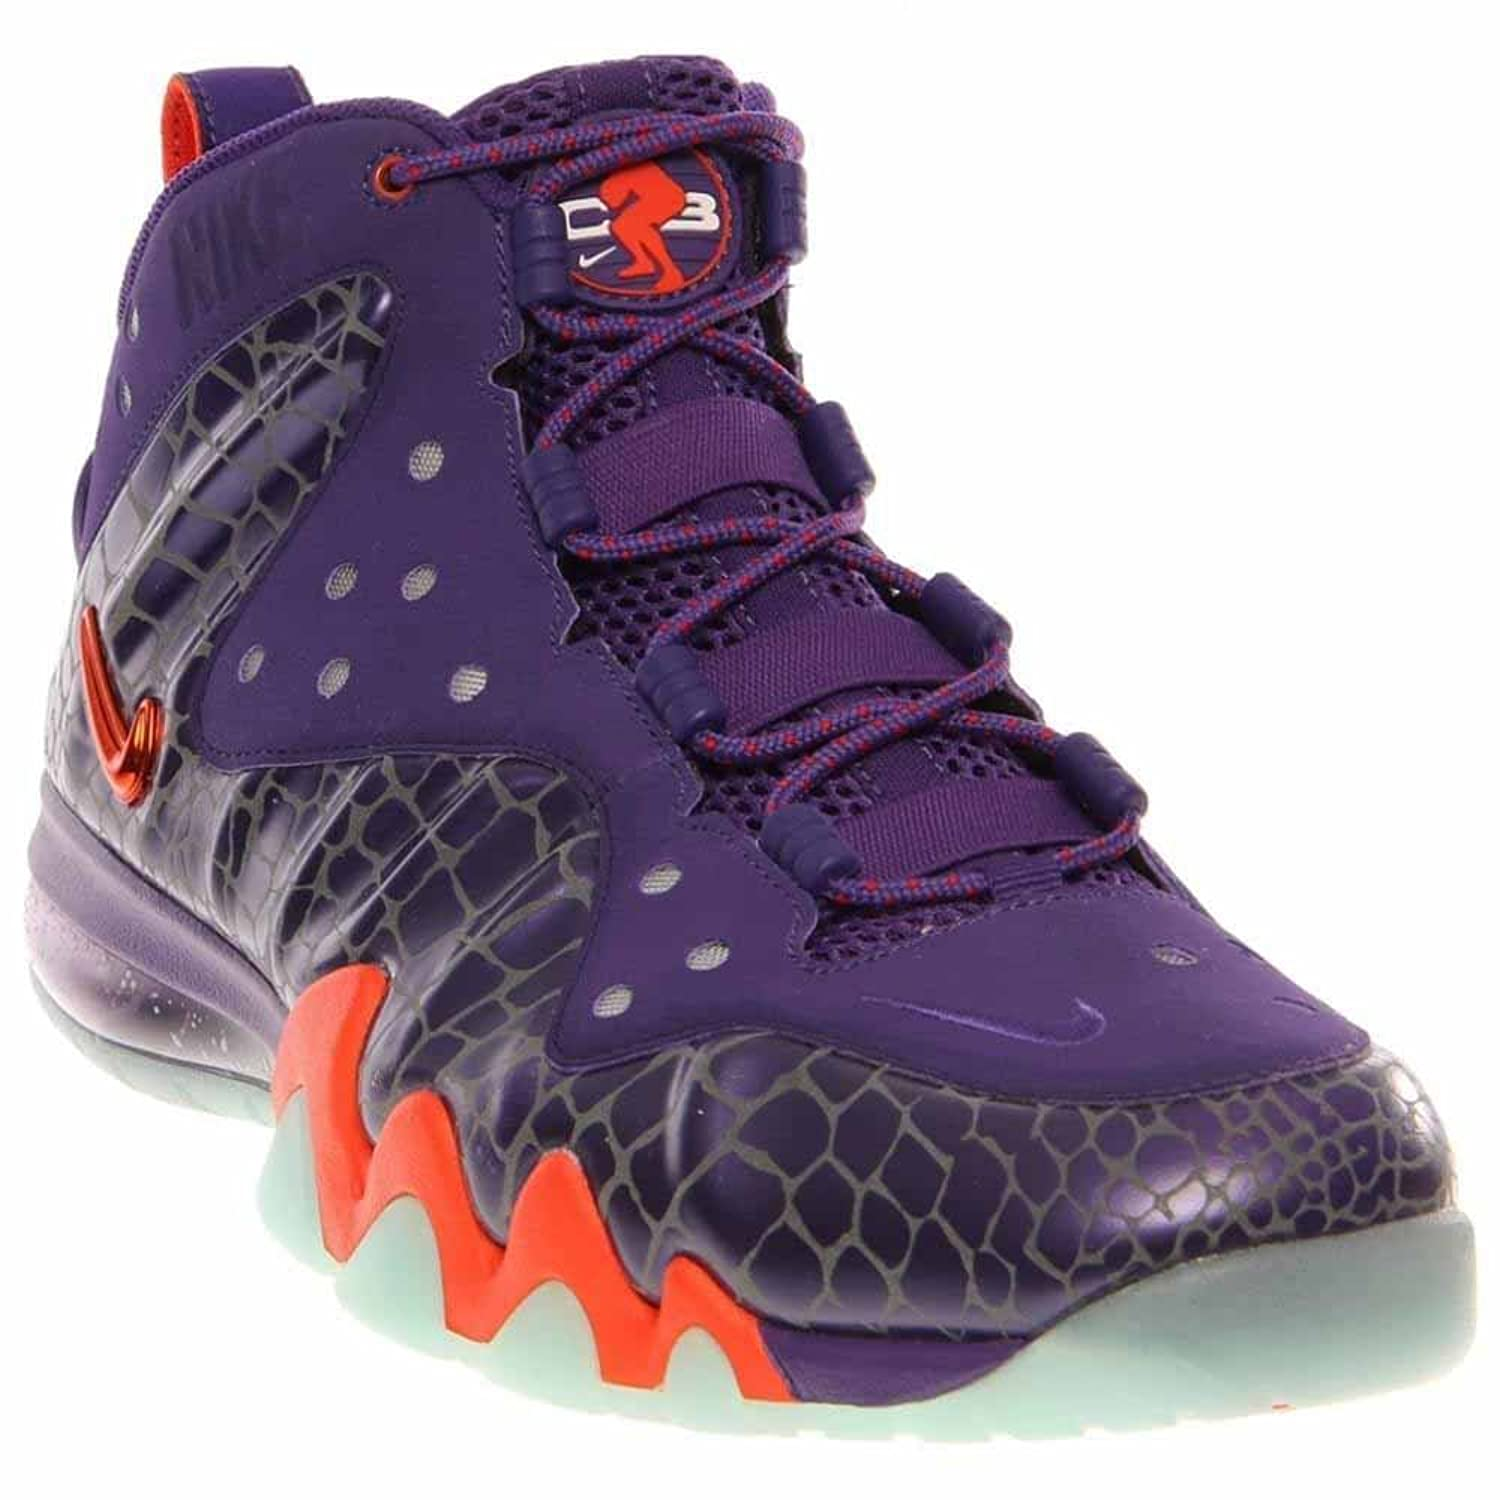 Nike Barkley Posite Max 555097 581 Mens Basketball Trainers Sneakers Court  Purple Team Orange Phoenix Suns